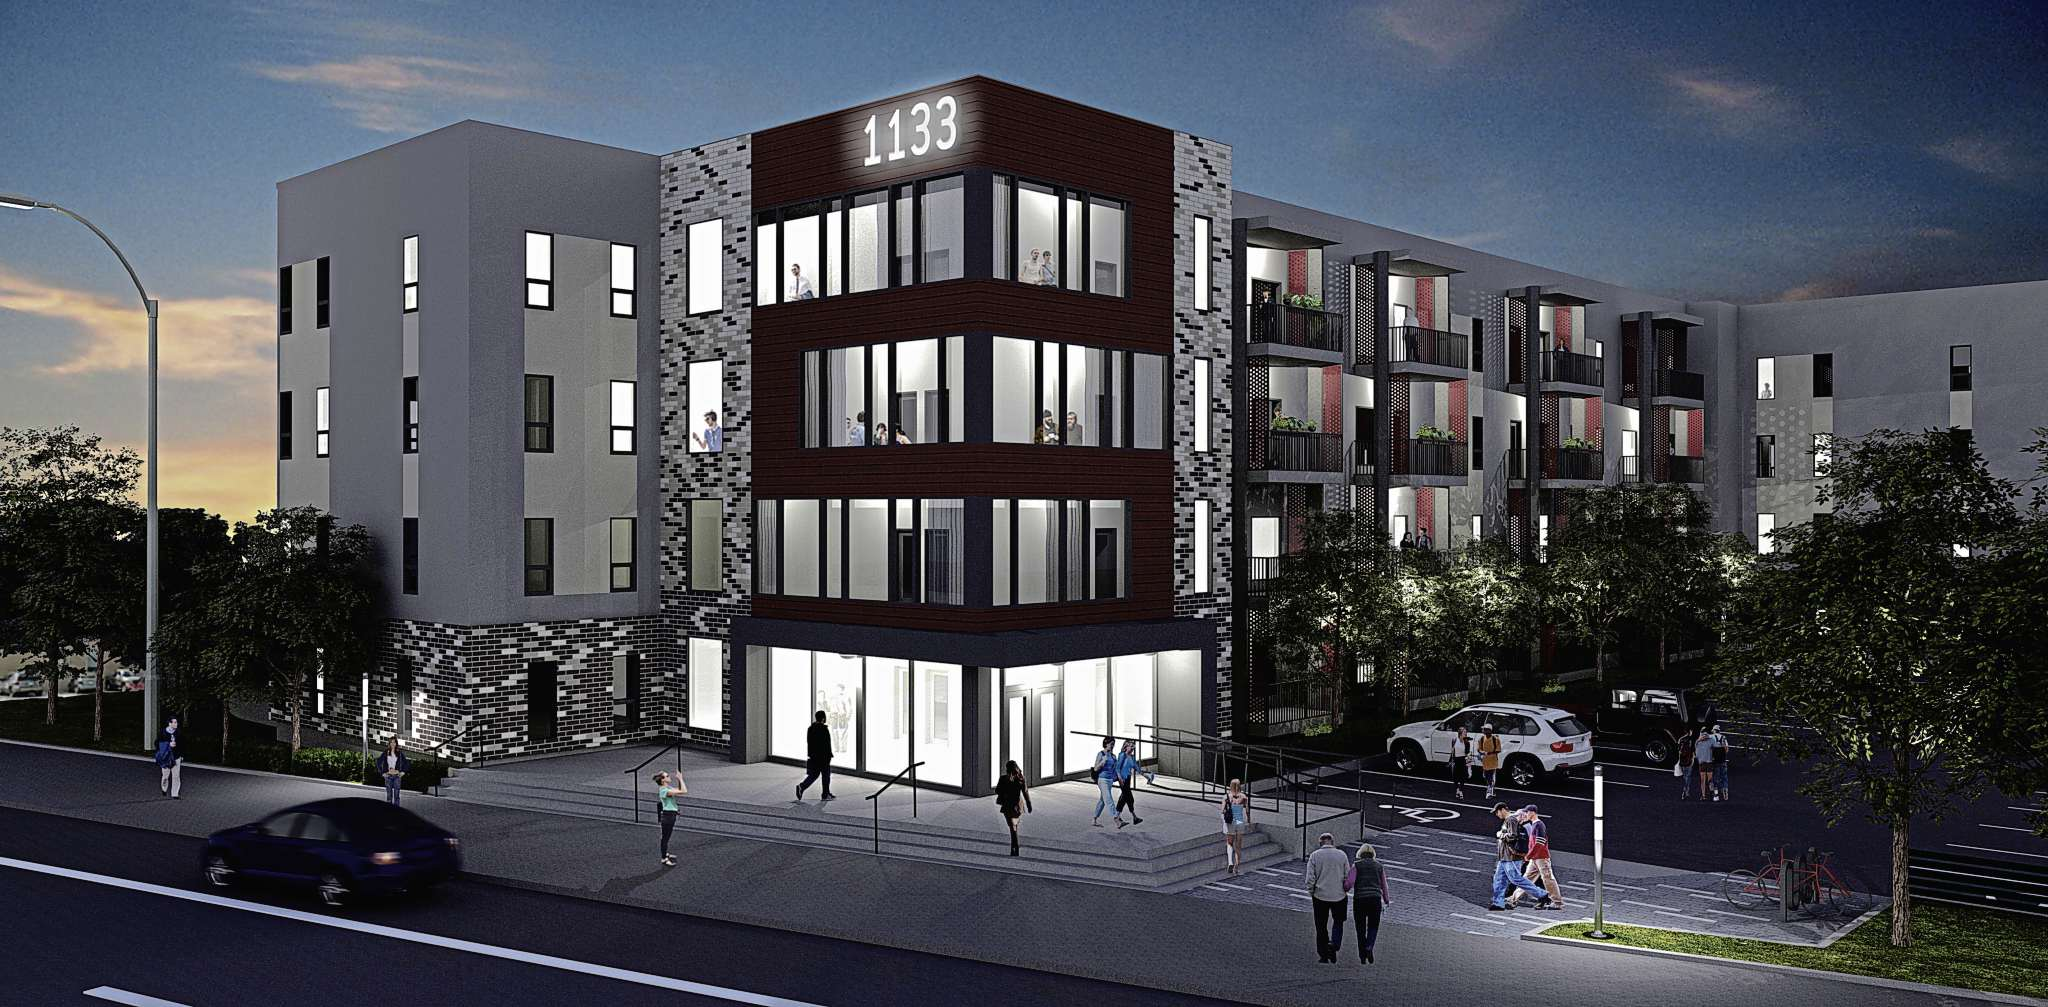 A 60-unit condo complex will begin construction at the site of the old Palomino Club in November.